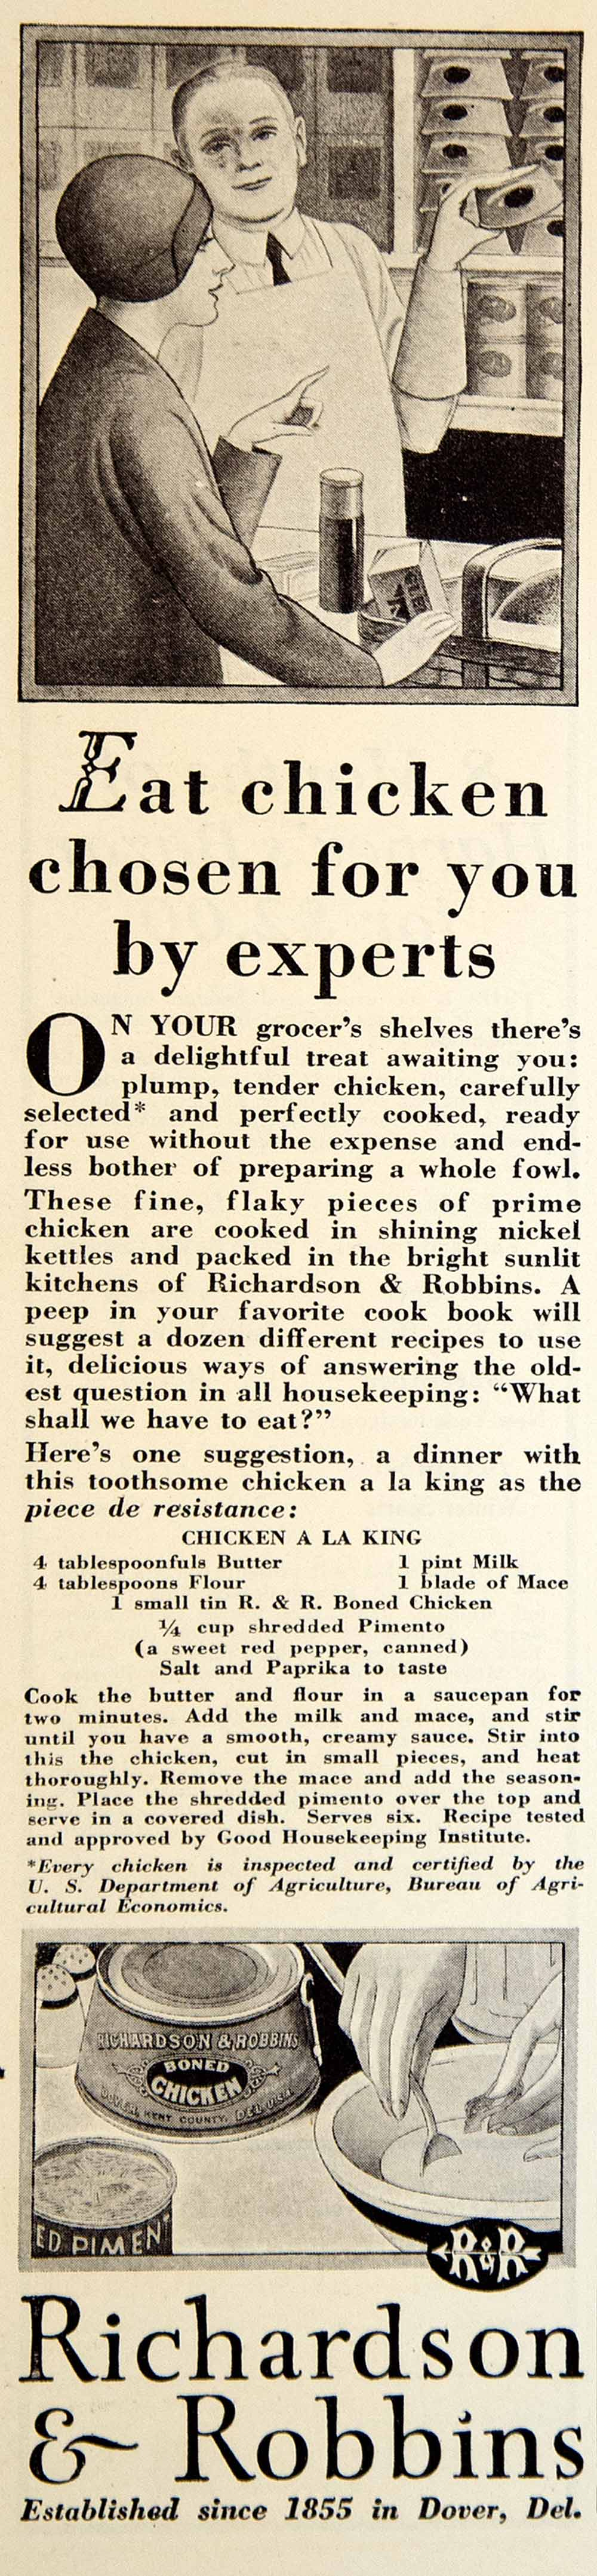 1929 Ad Richarson Robbins Boned Chicken Can Tin Grocery Food Meat Art Deco YGH3